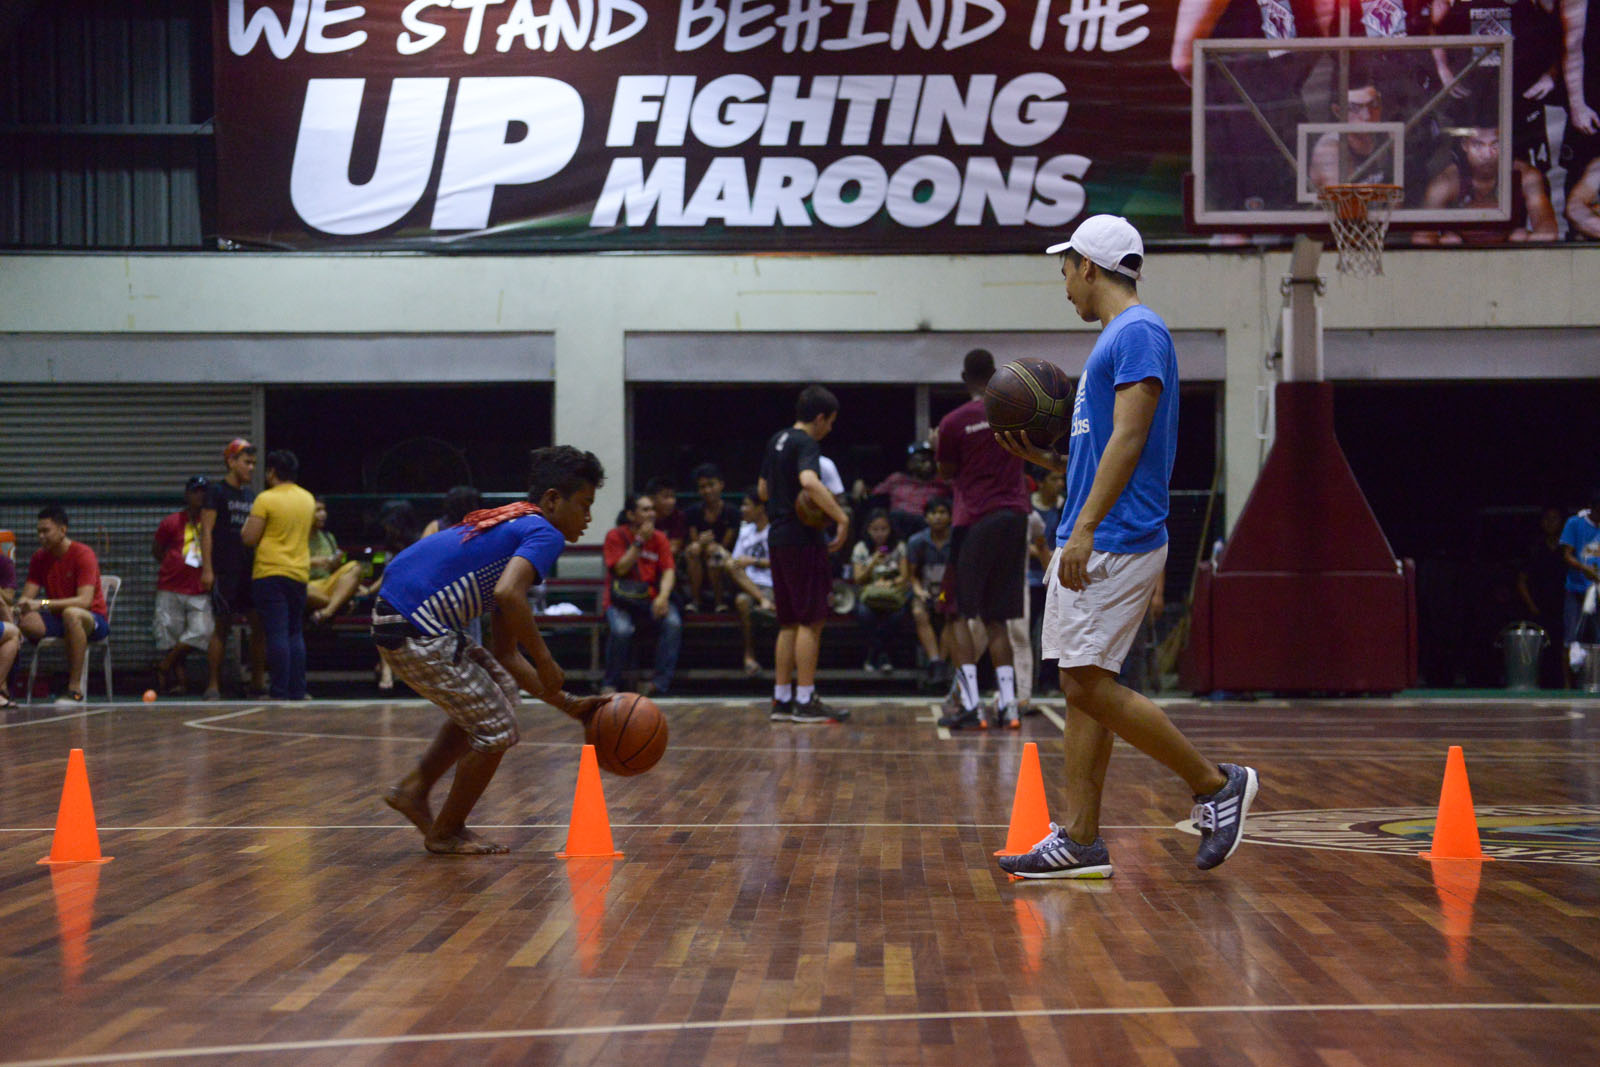 FIGHTING MAROONS. Members of UP Fighting Maroons show young Lumad basketball drills at the University of the Philippines Diliman on Monday night, October 26. All photos by Jansen Romero